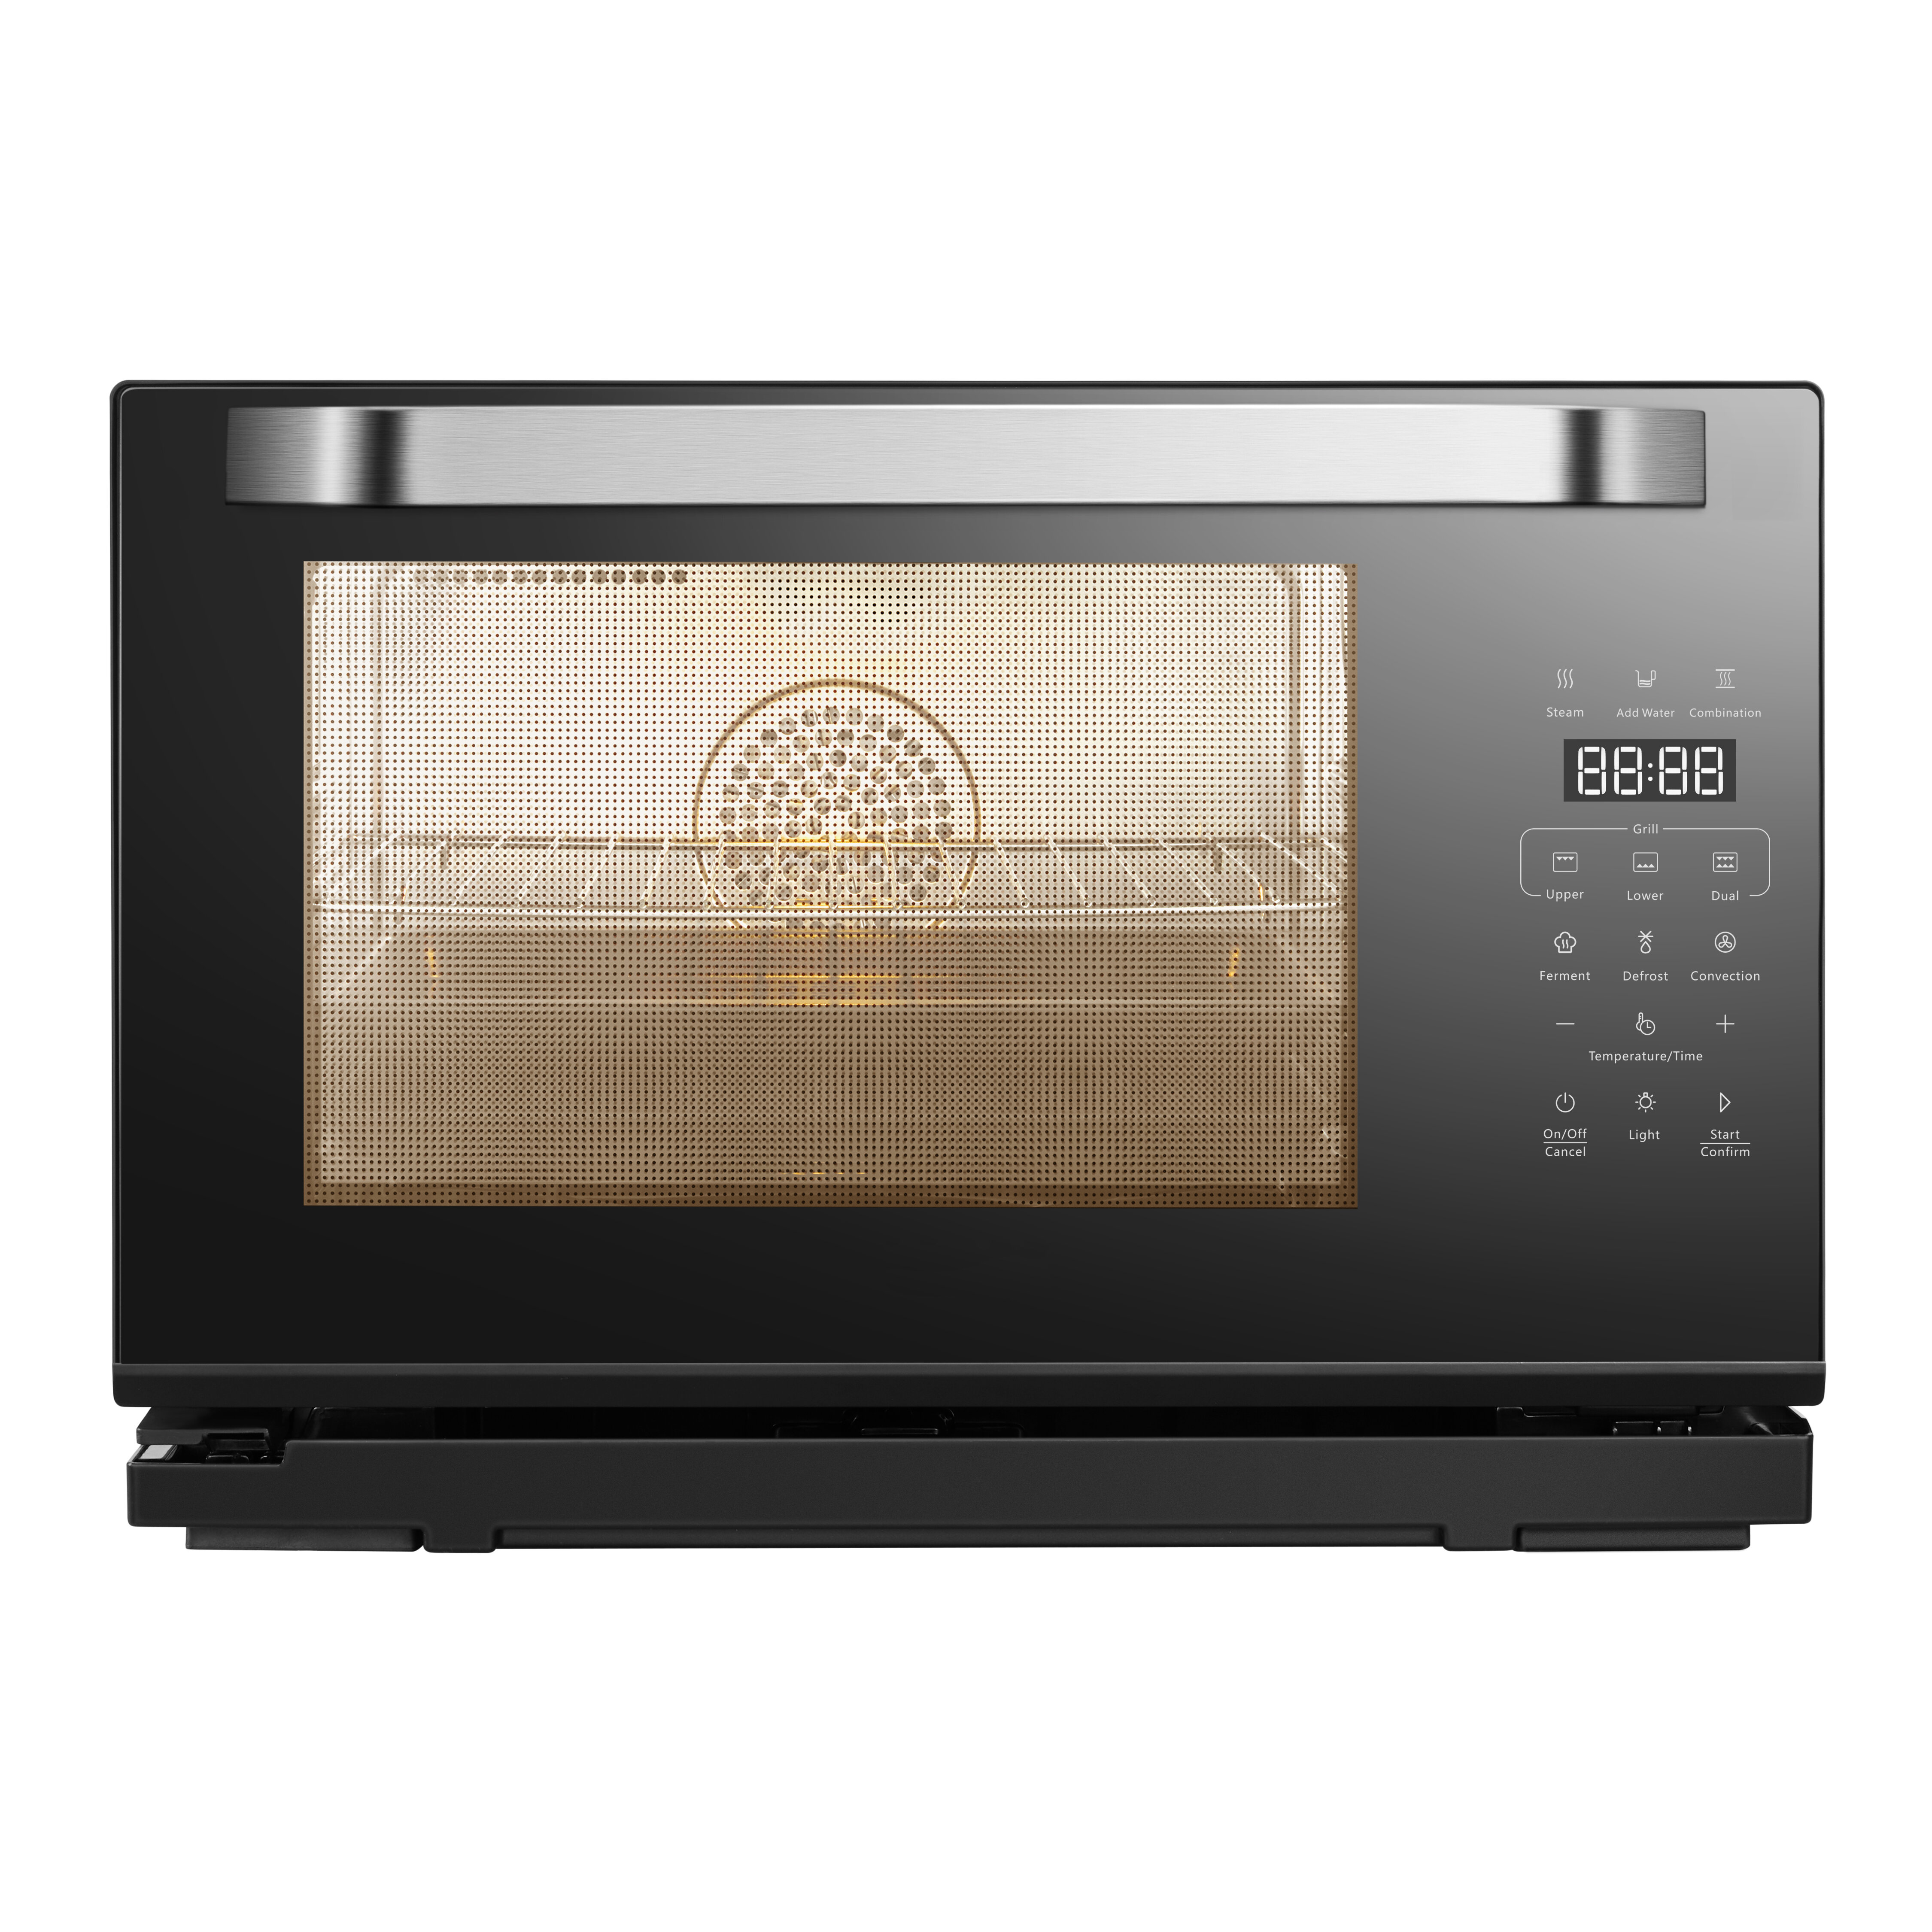 Sensor Cooking Toaster Oven